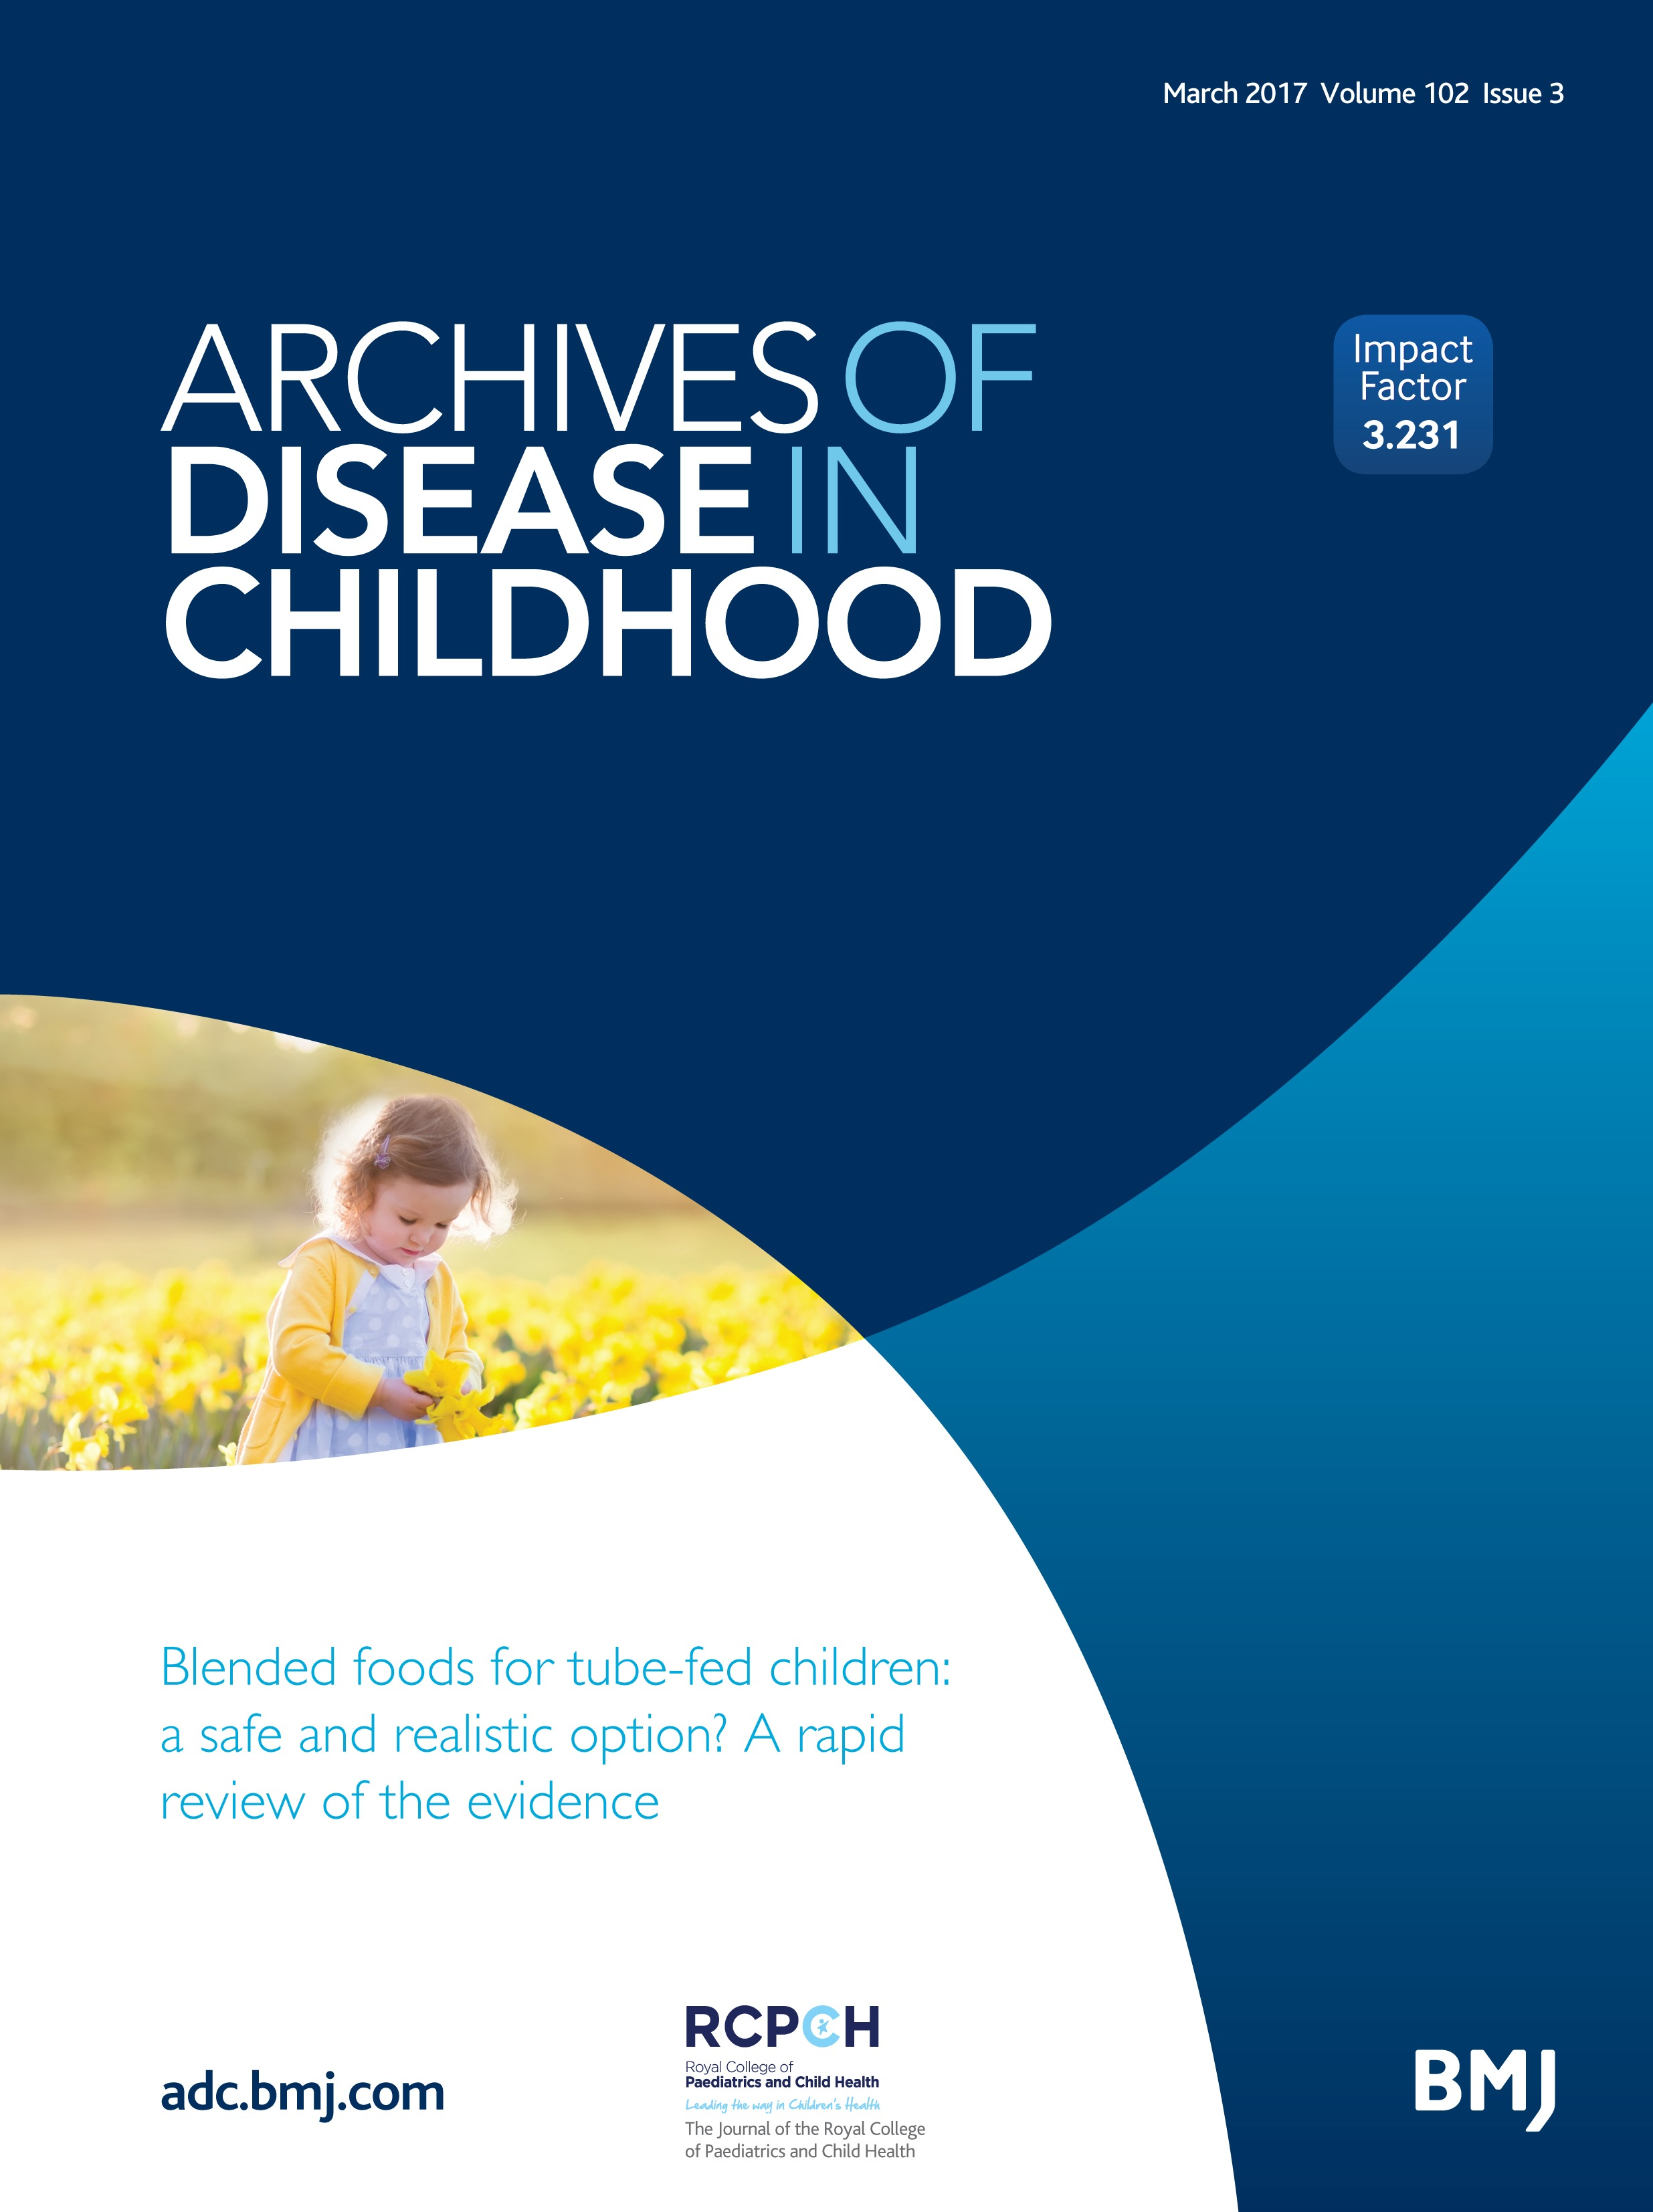 Who needs thyroid function testing at birth? | Archives of Disease ...